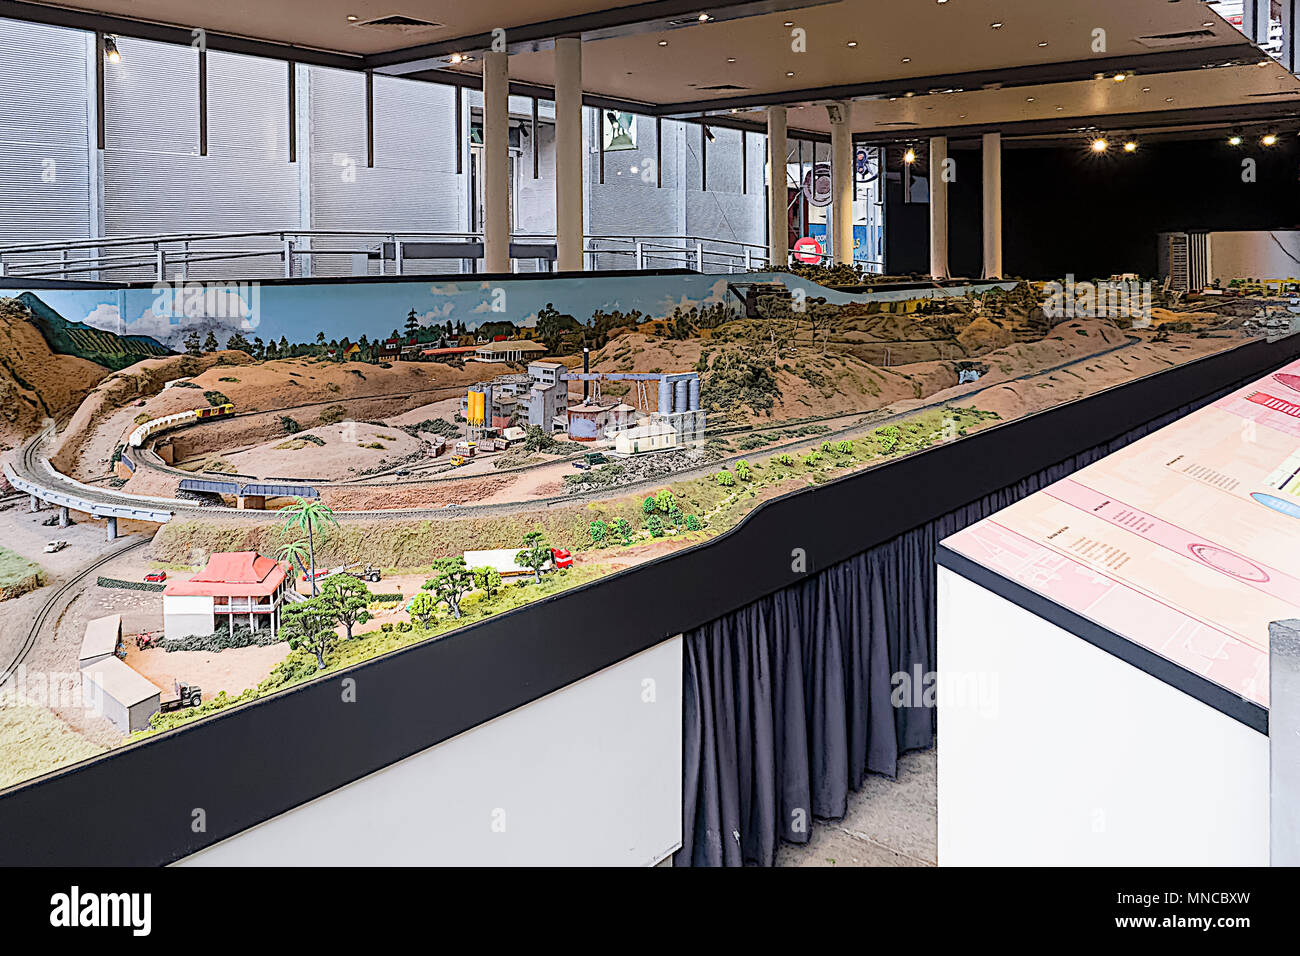 Made as authentis as possible this huge model railway layout is maintained by vounteers - Stock Image